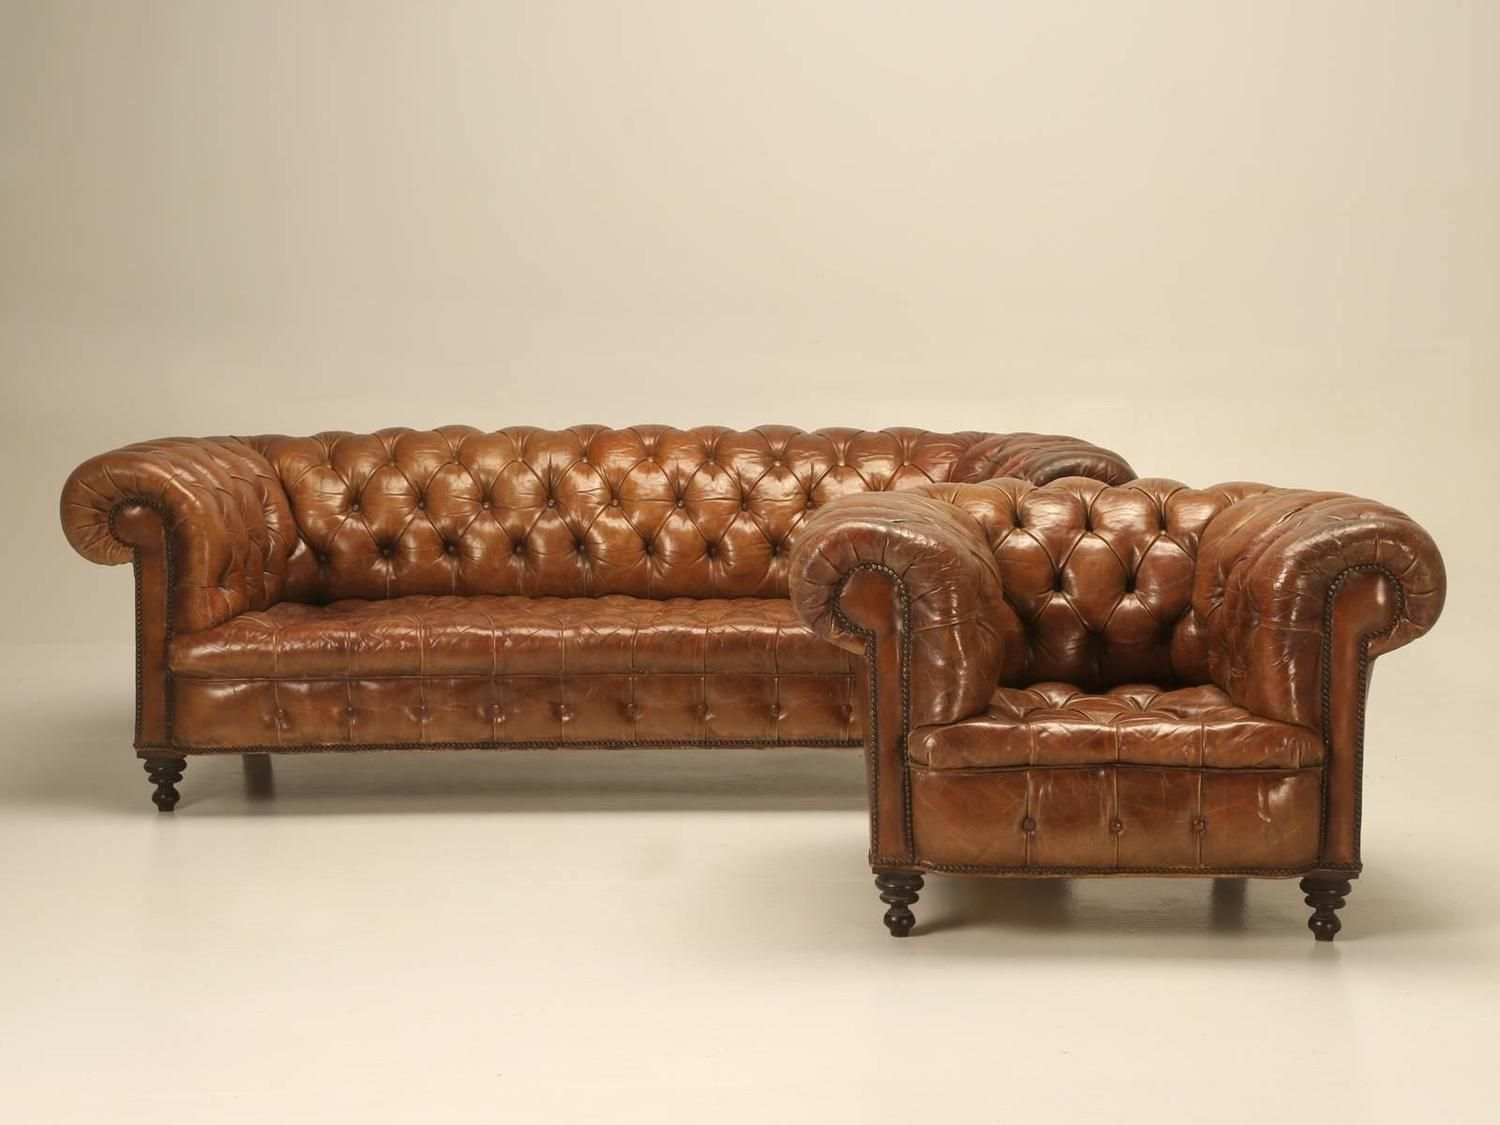 Chesterfield Sofa And Chair Antique Leather Chesterfield Sofa In Original Leather In 2018